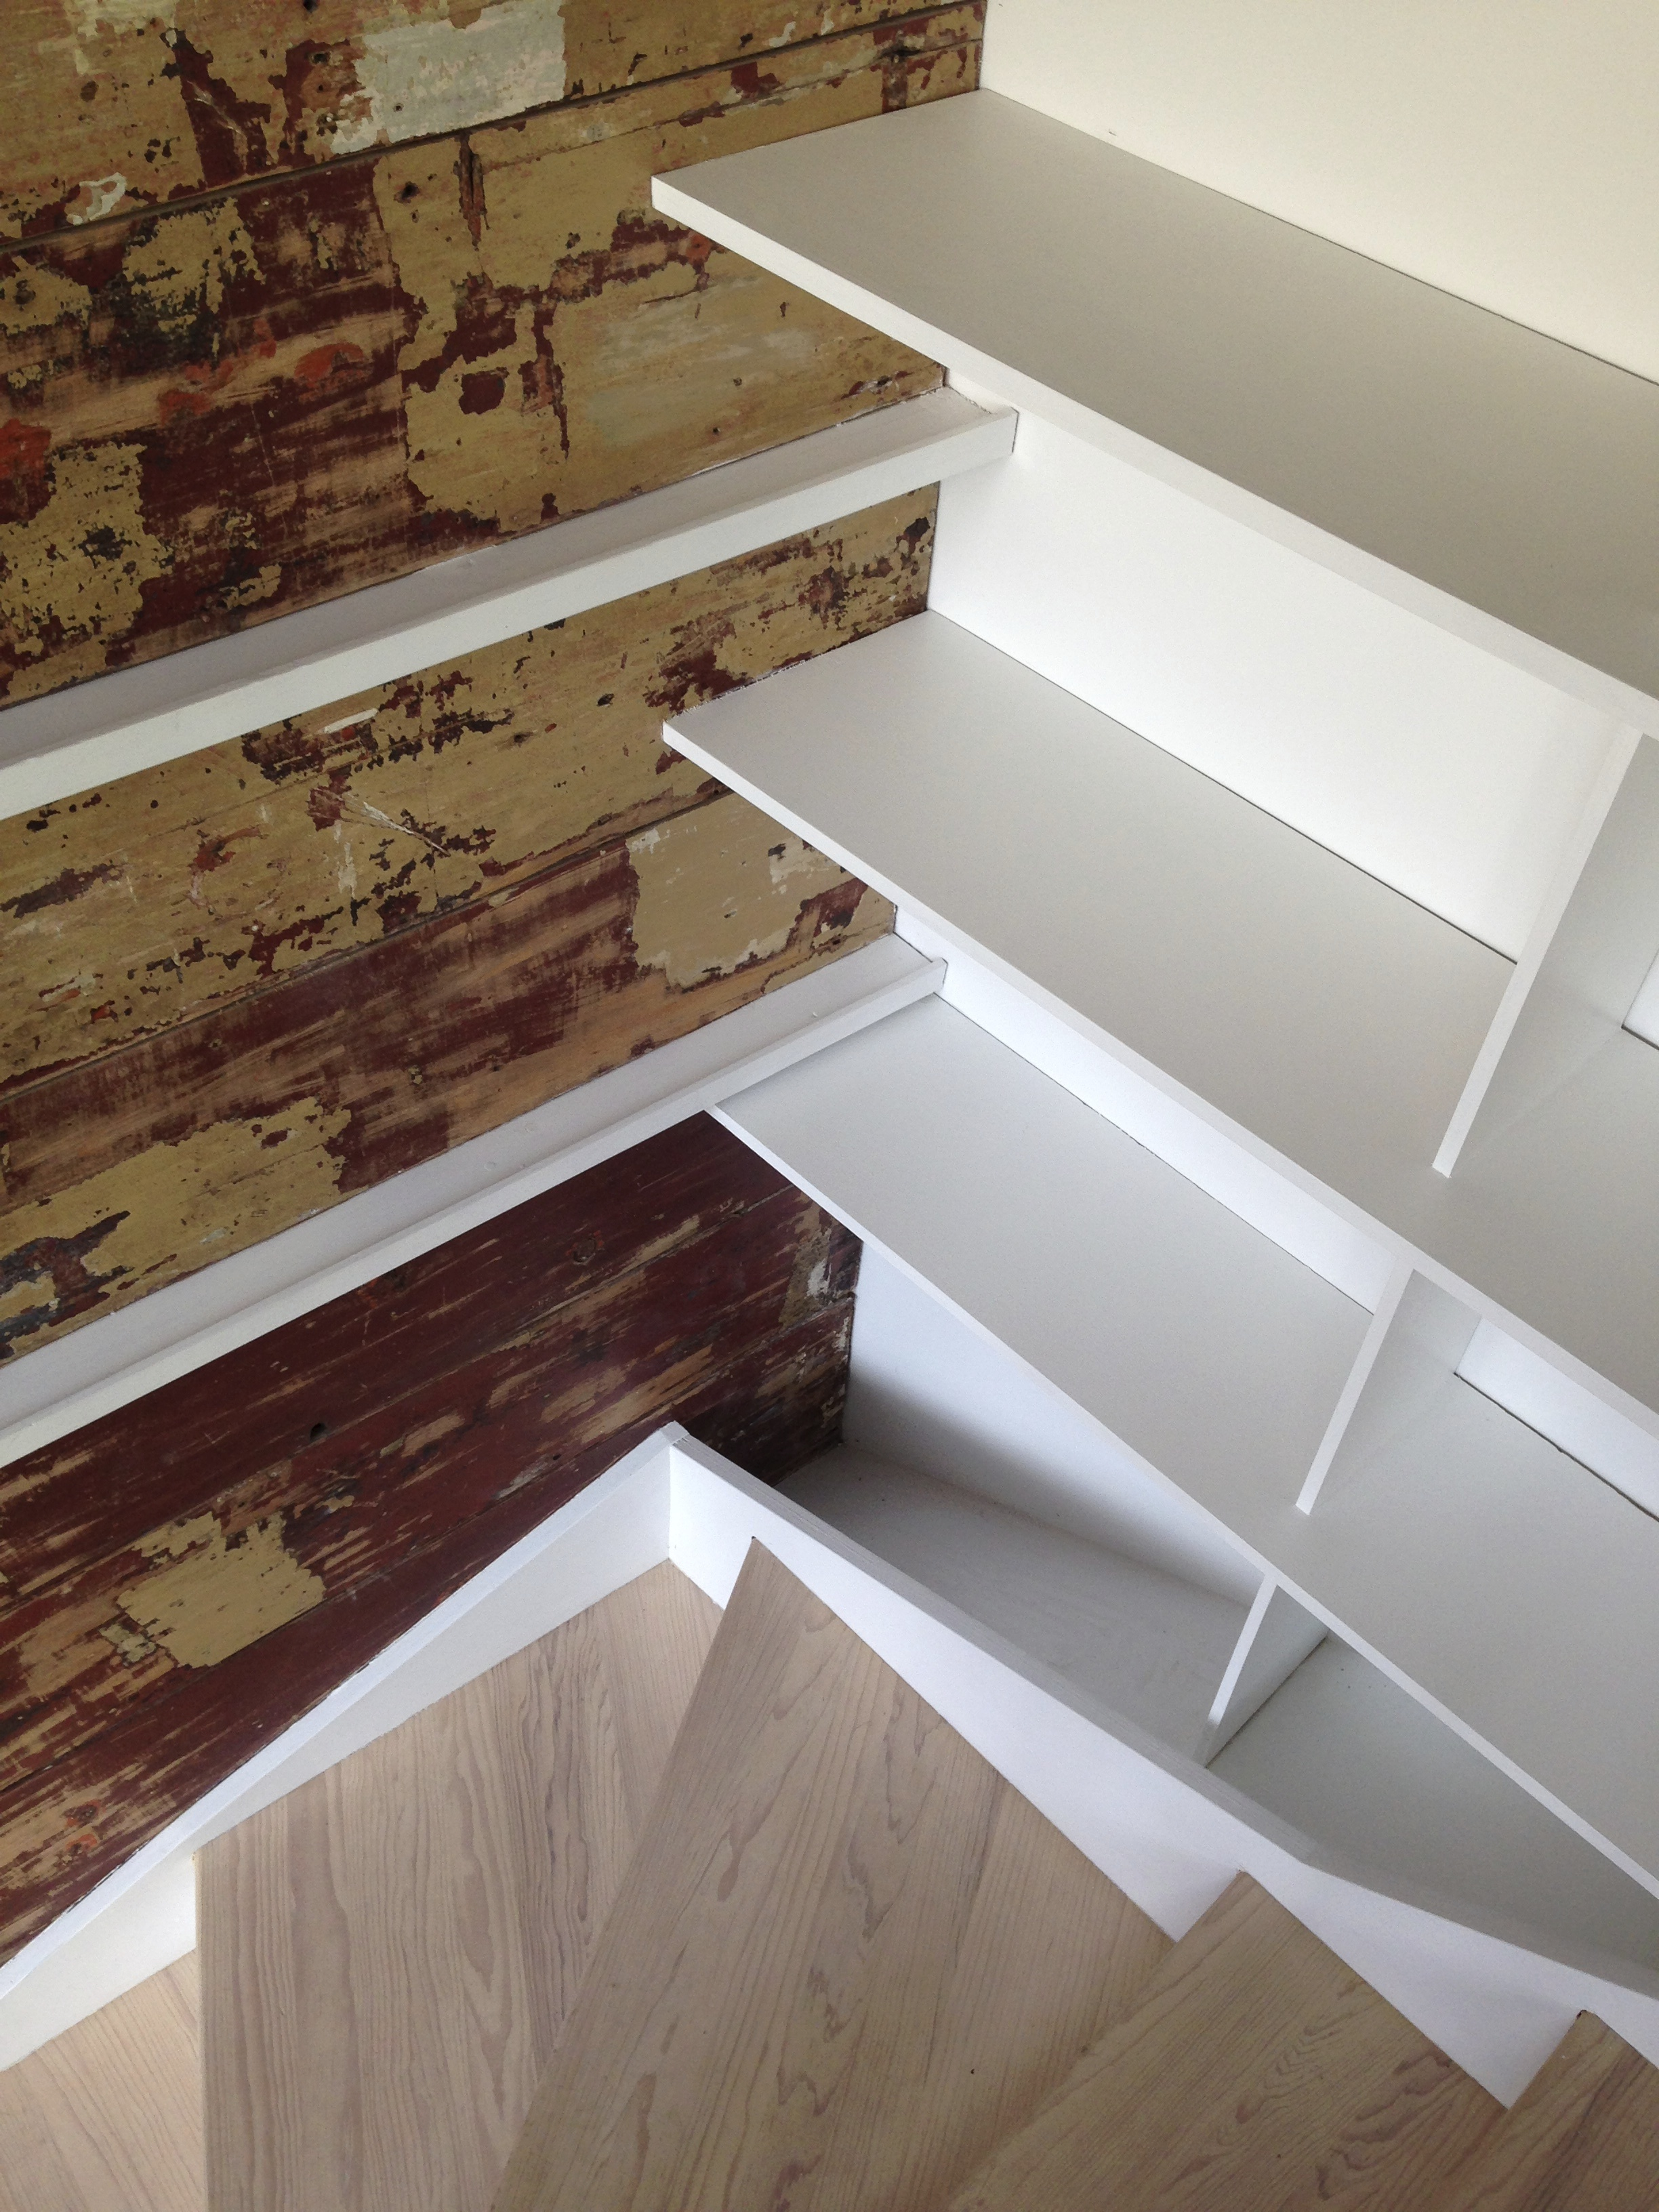 MR_studio_stair_corner_detail